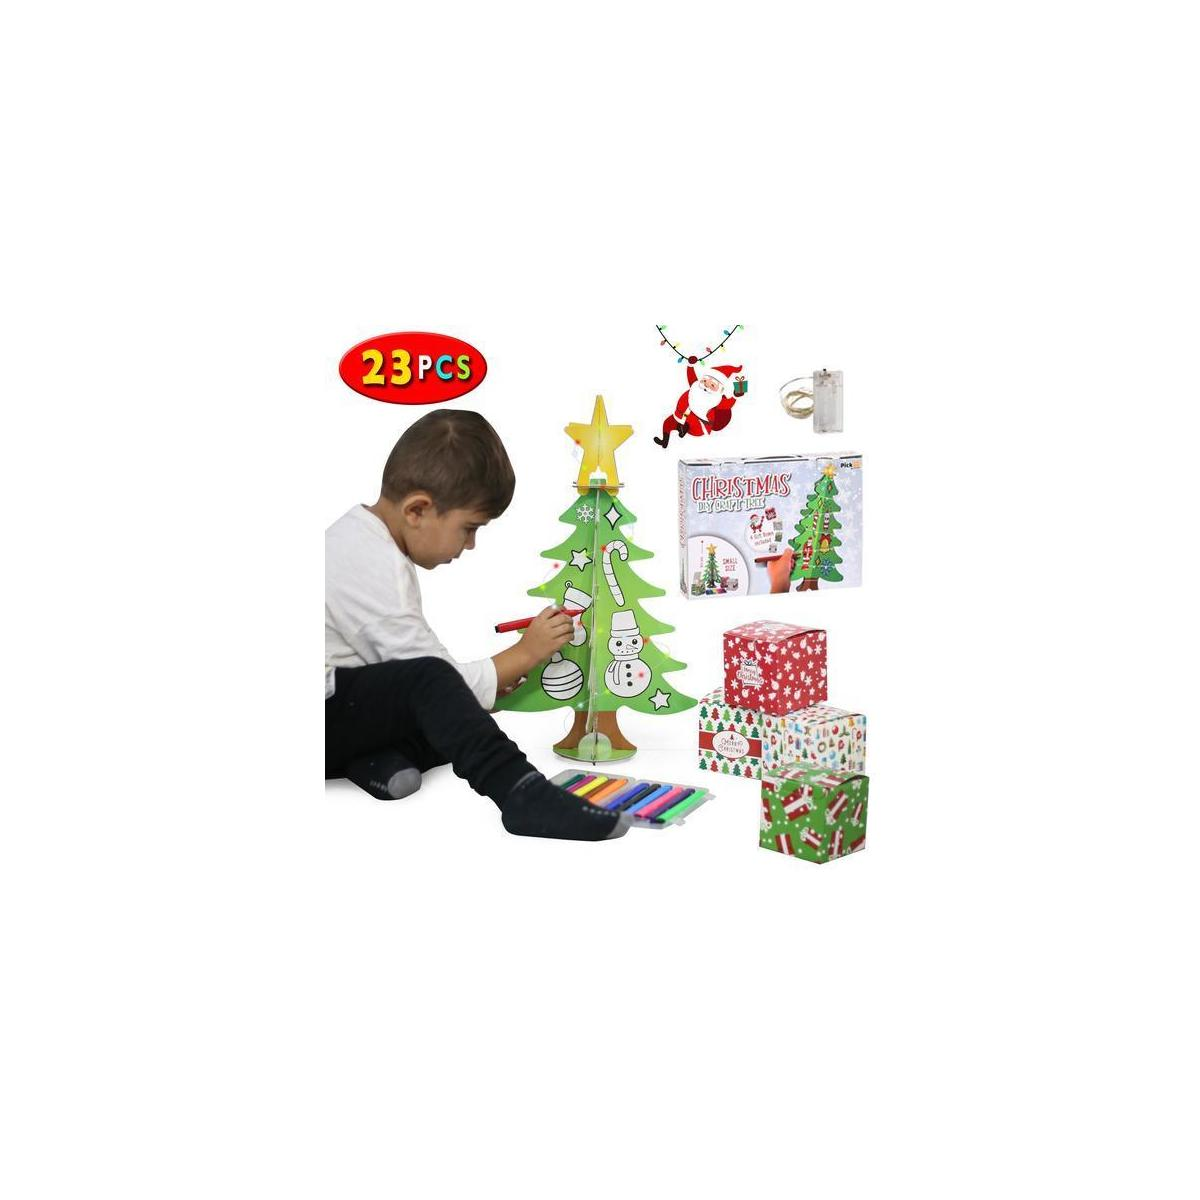 PICKME DIY Christmas Tree Craft for Kids Xmas Gifts | 6Pcs 1.6ft 3D Christmas Tree Toy with 12 Paint Markers, 4 Craft Gift Boxes, 2m LED Strip Light…